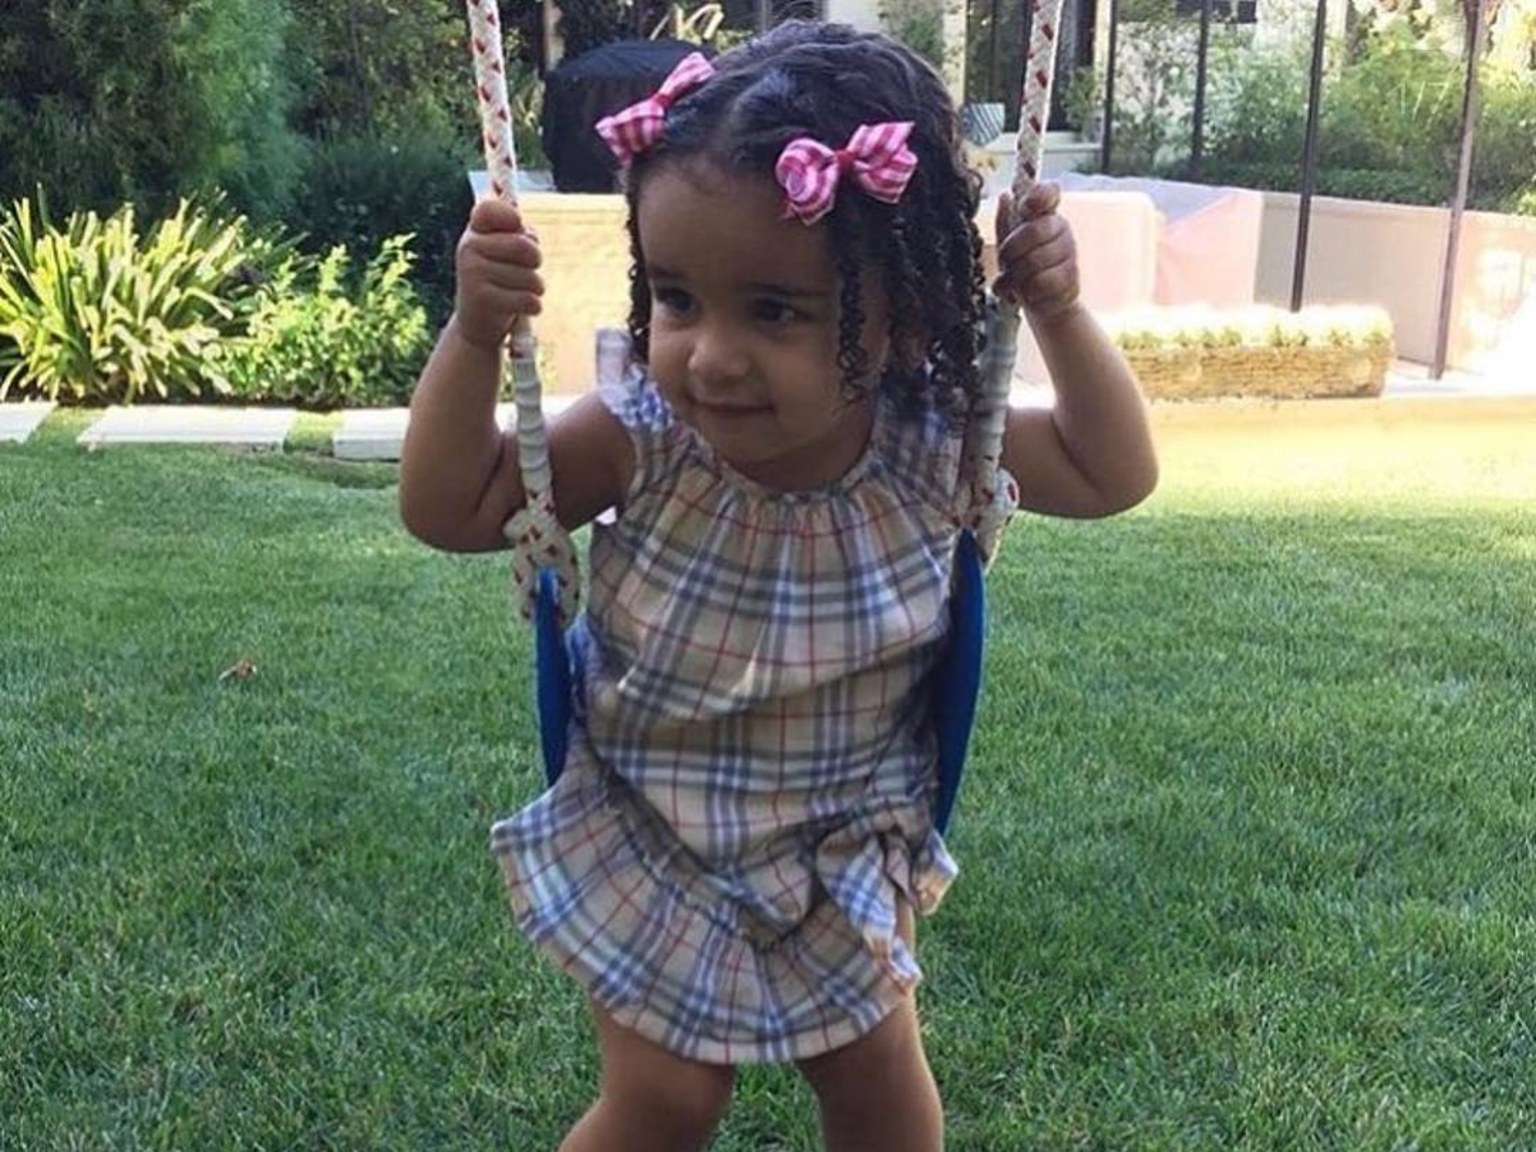 Dream Kardashian Is Her Dad's 'Mini-Me' In The Most Recent Video